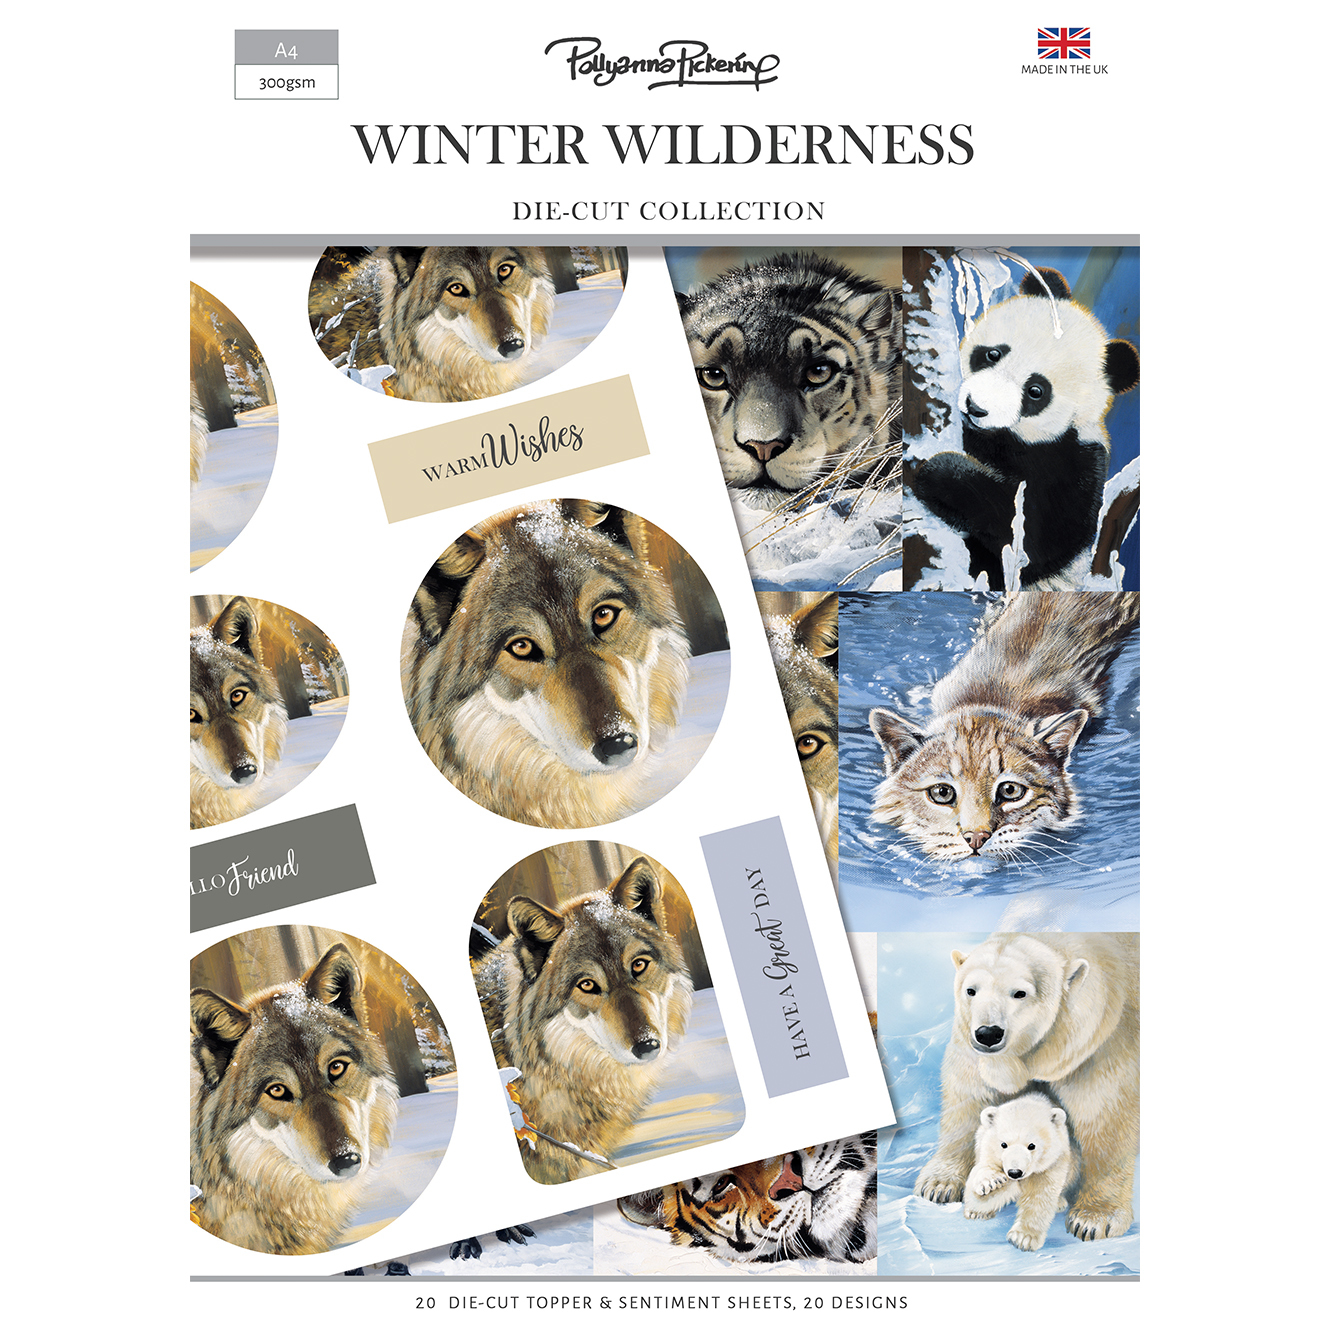 Pollyanna Pickering Winter Wilderness Die Cut Toppers and Sentiments Collection